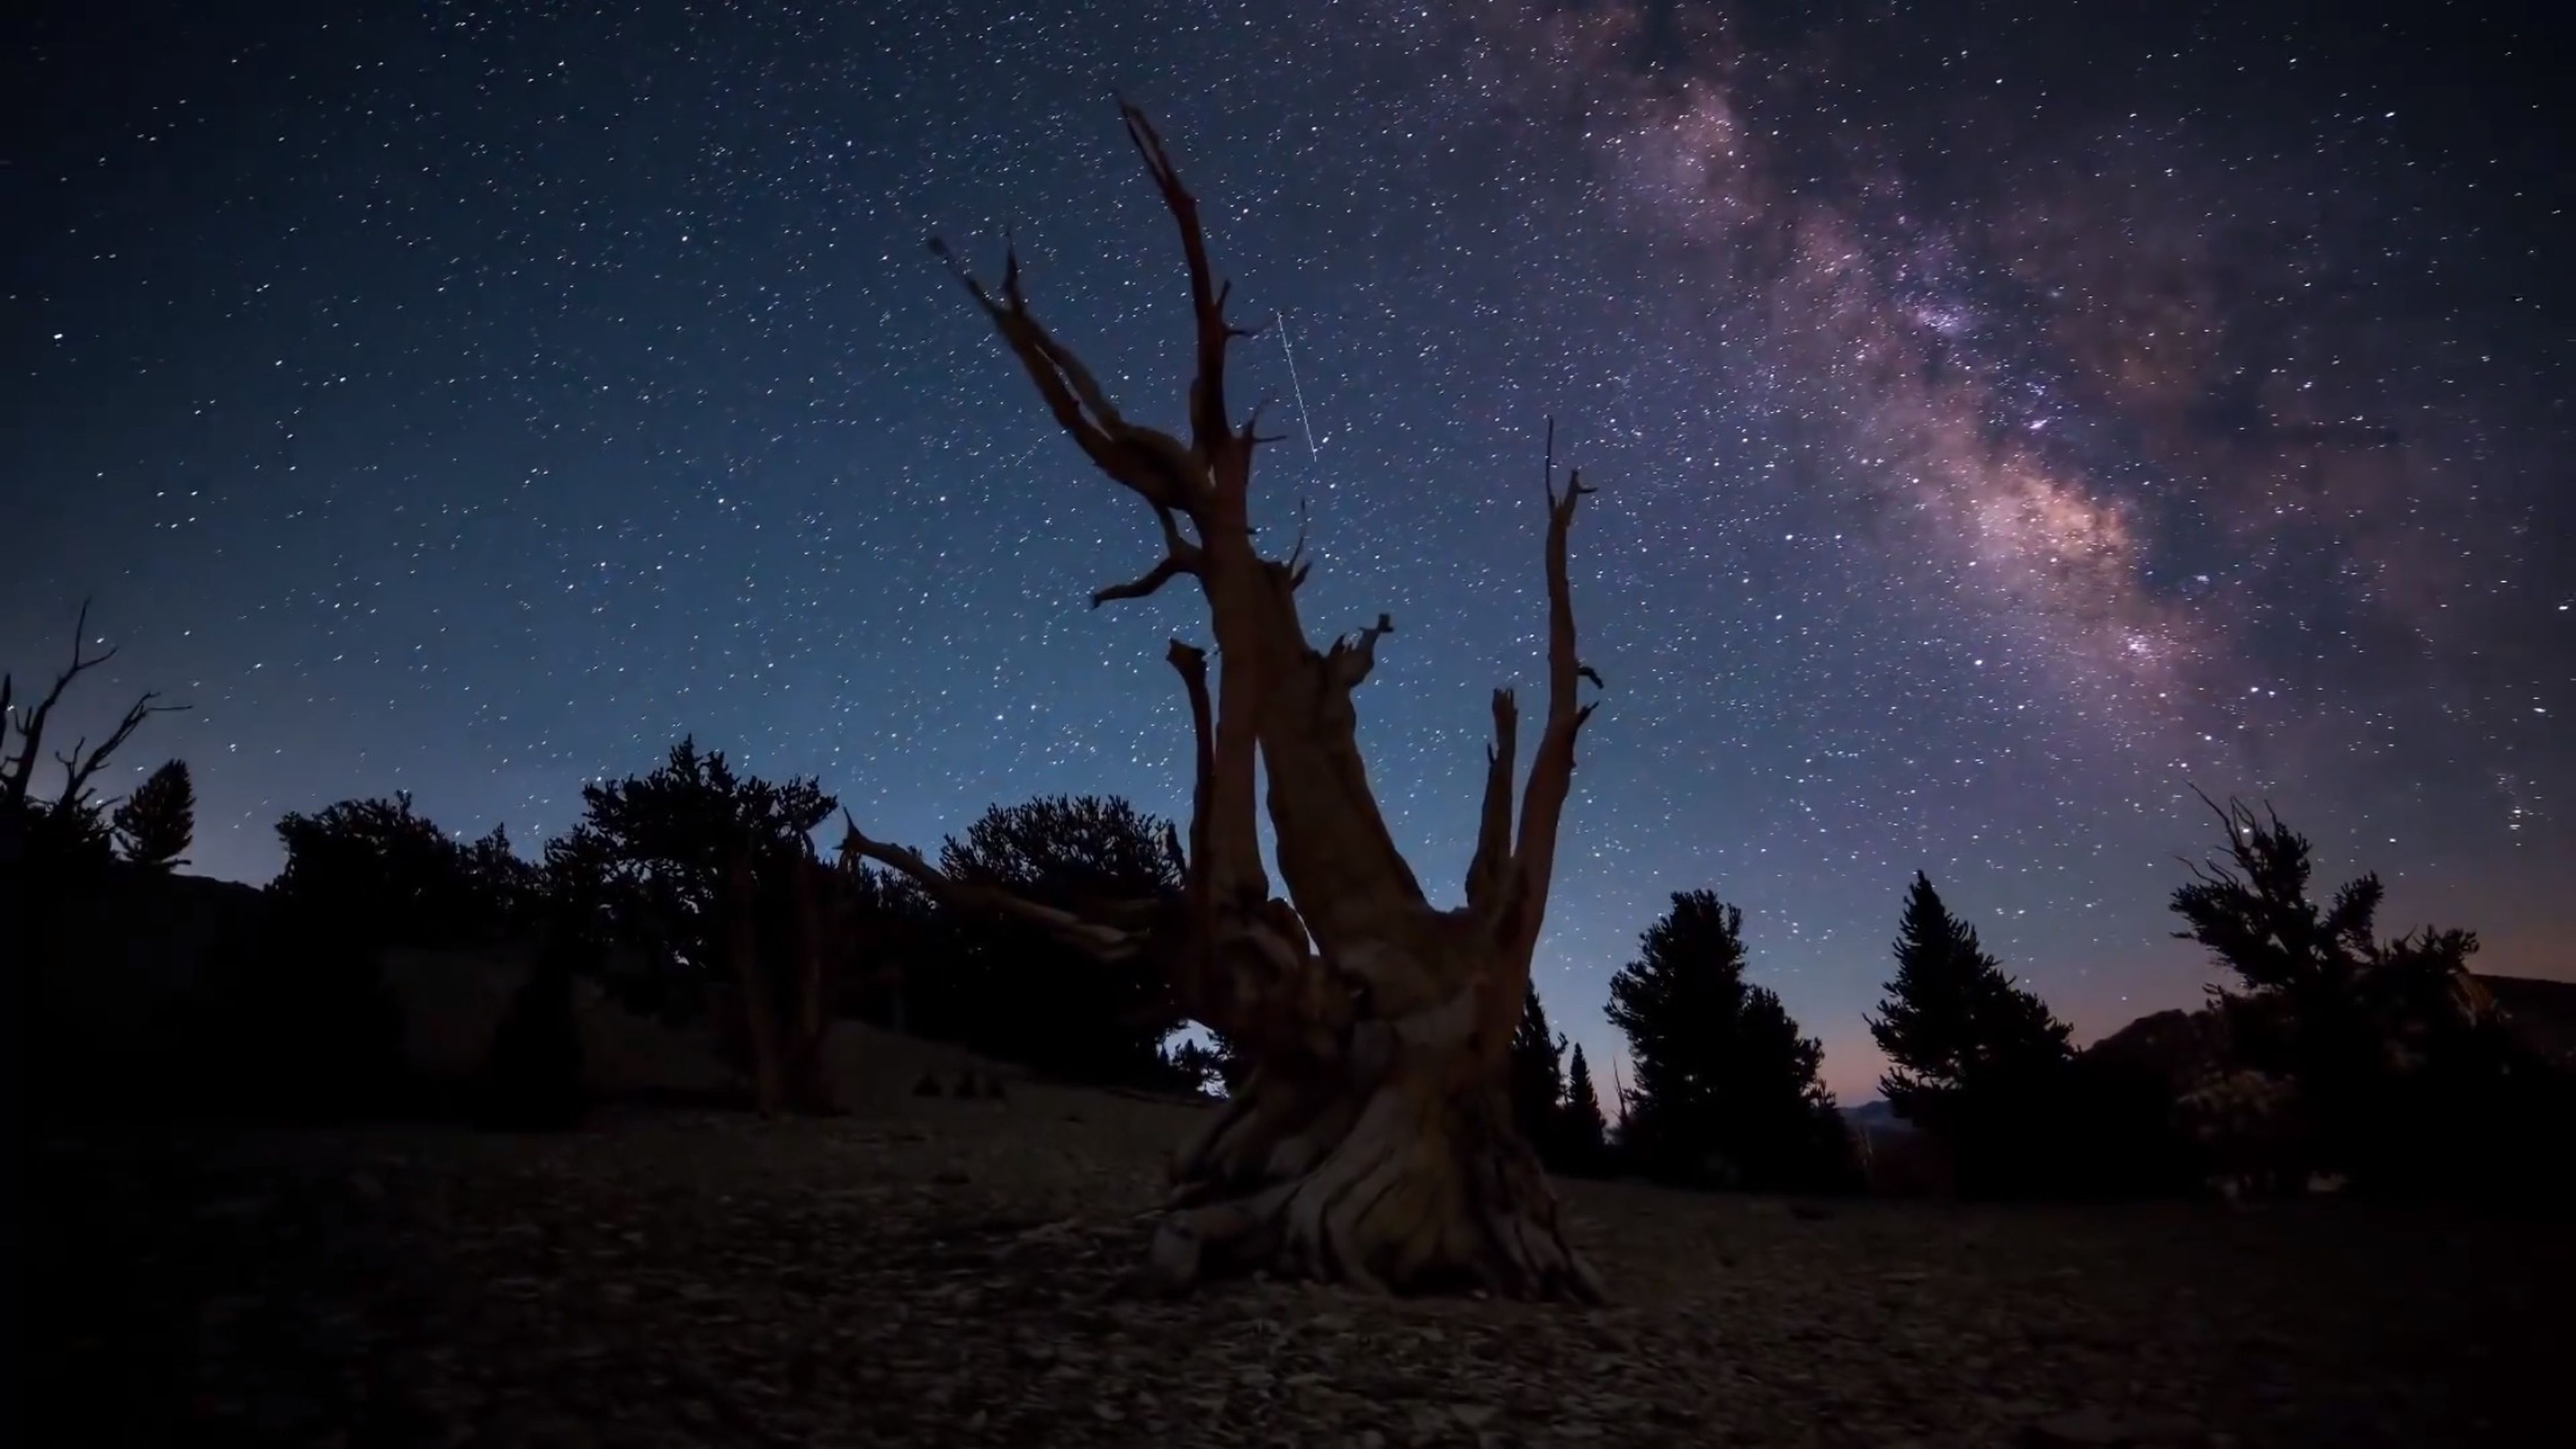 night, tree, sky, low angle view, silhouette, dark, star - space, illuminated, tranquility, bare tree, star field, tranquil scene, nature, scenics, outdoors, no people, branch, beauty in nature, tree trunk, astronomy